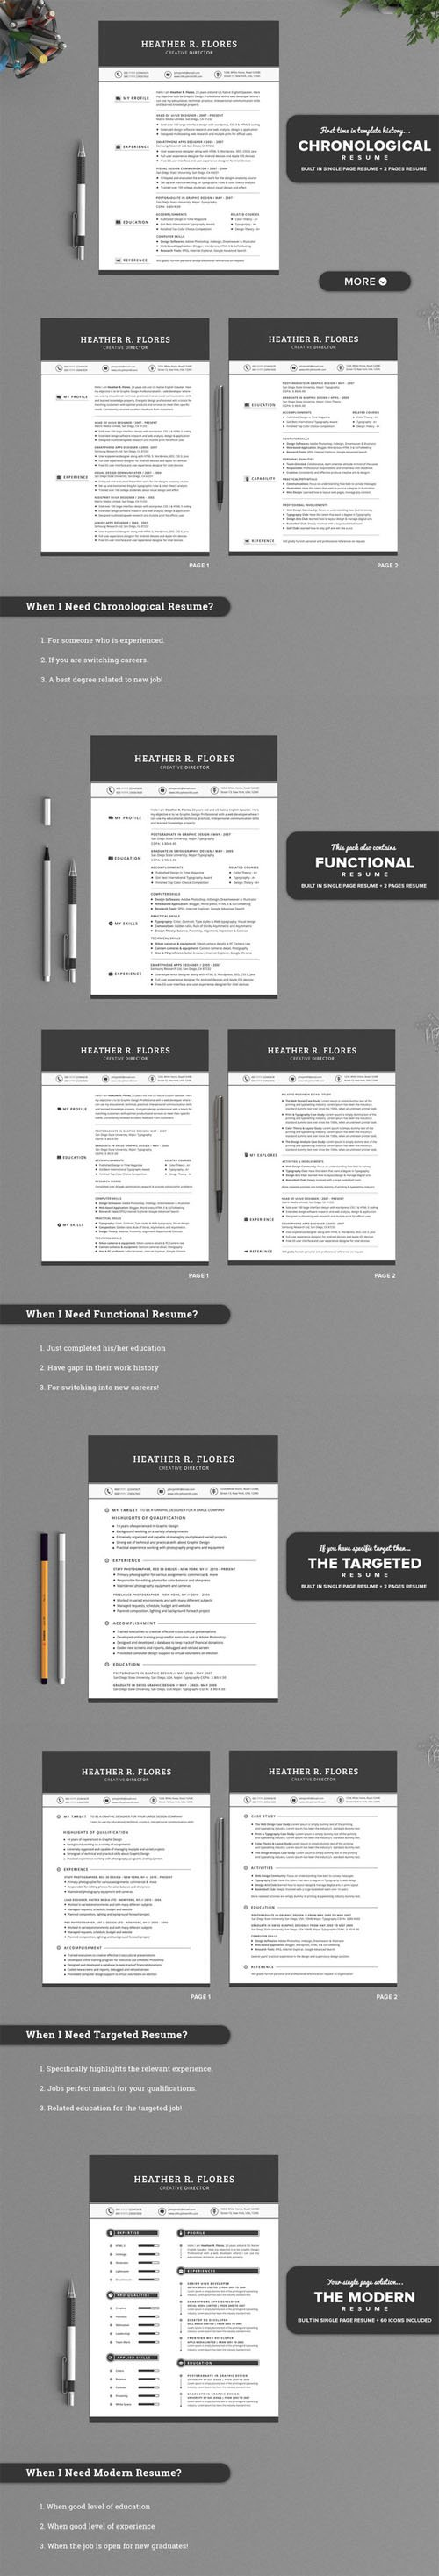 Creativemarket - All in One Timeless Resume CV Pack 184037